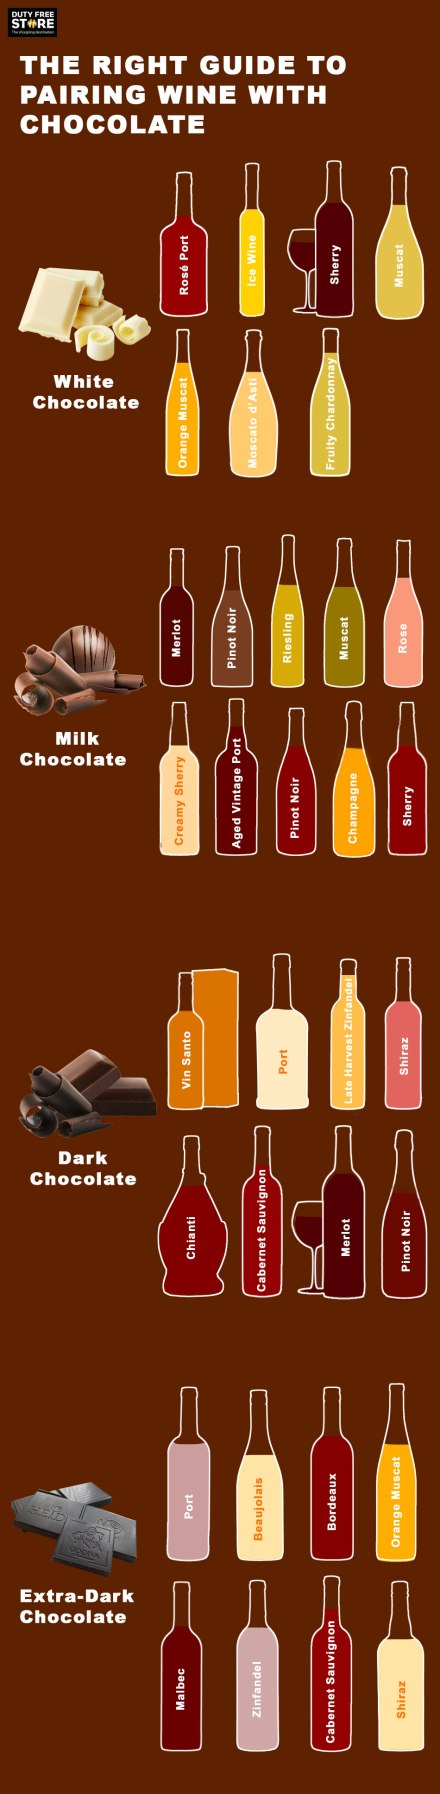 wine_chocolate